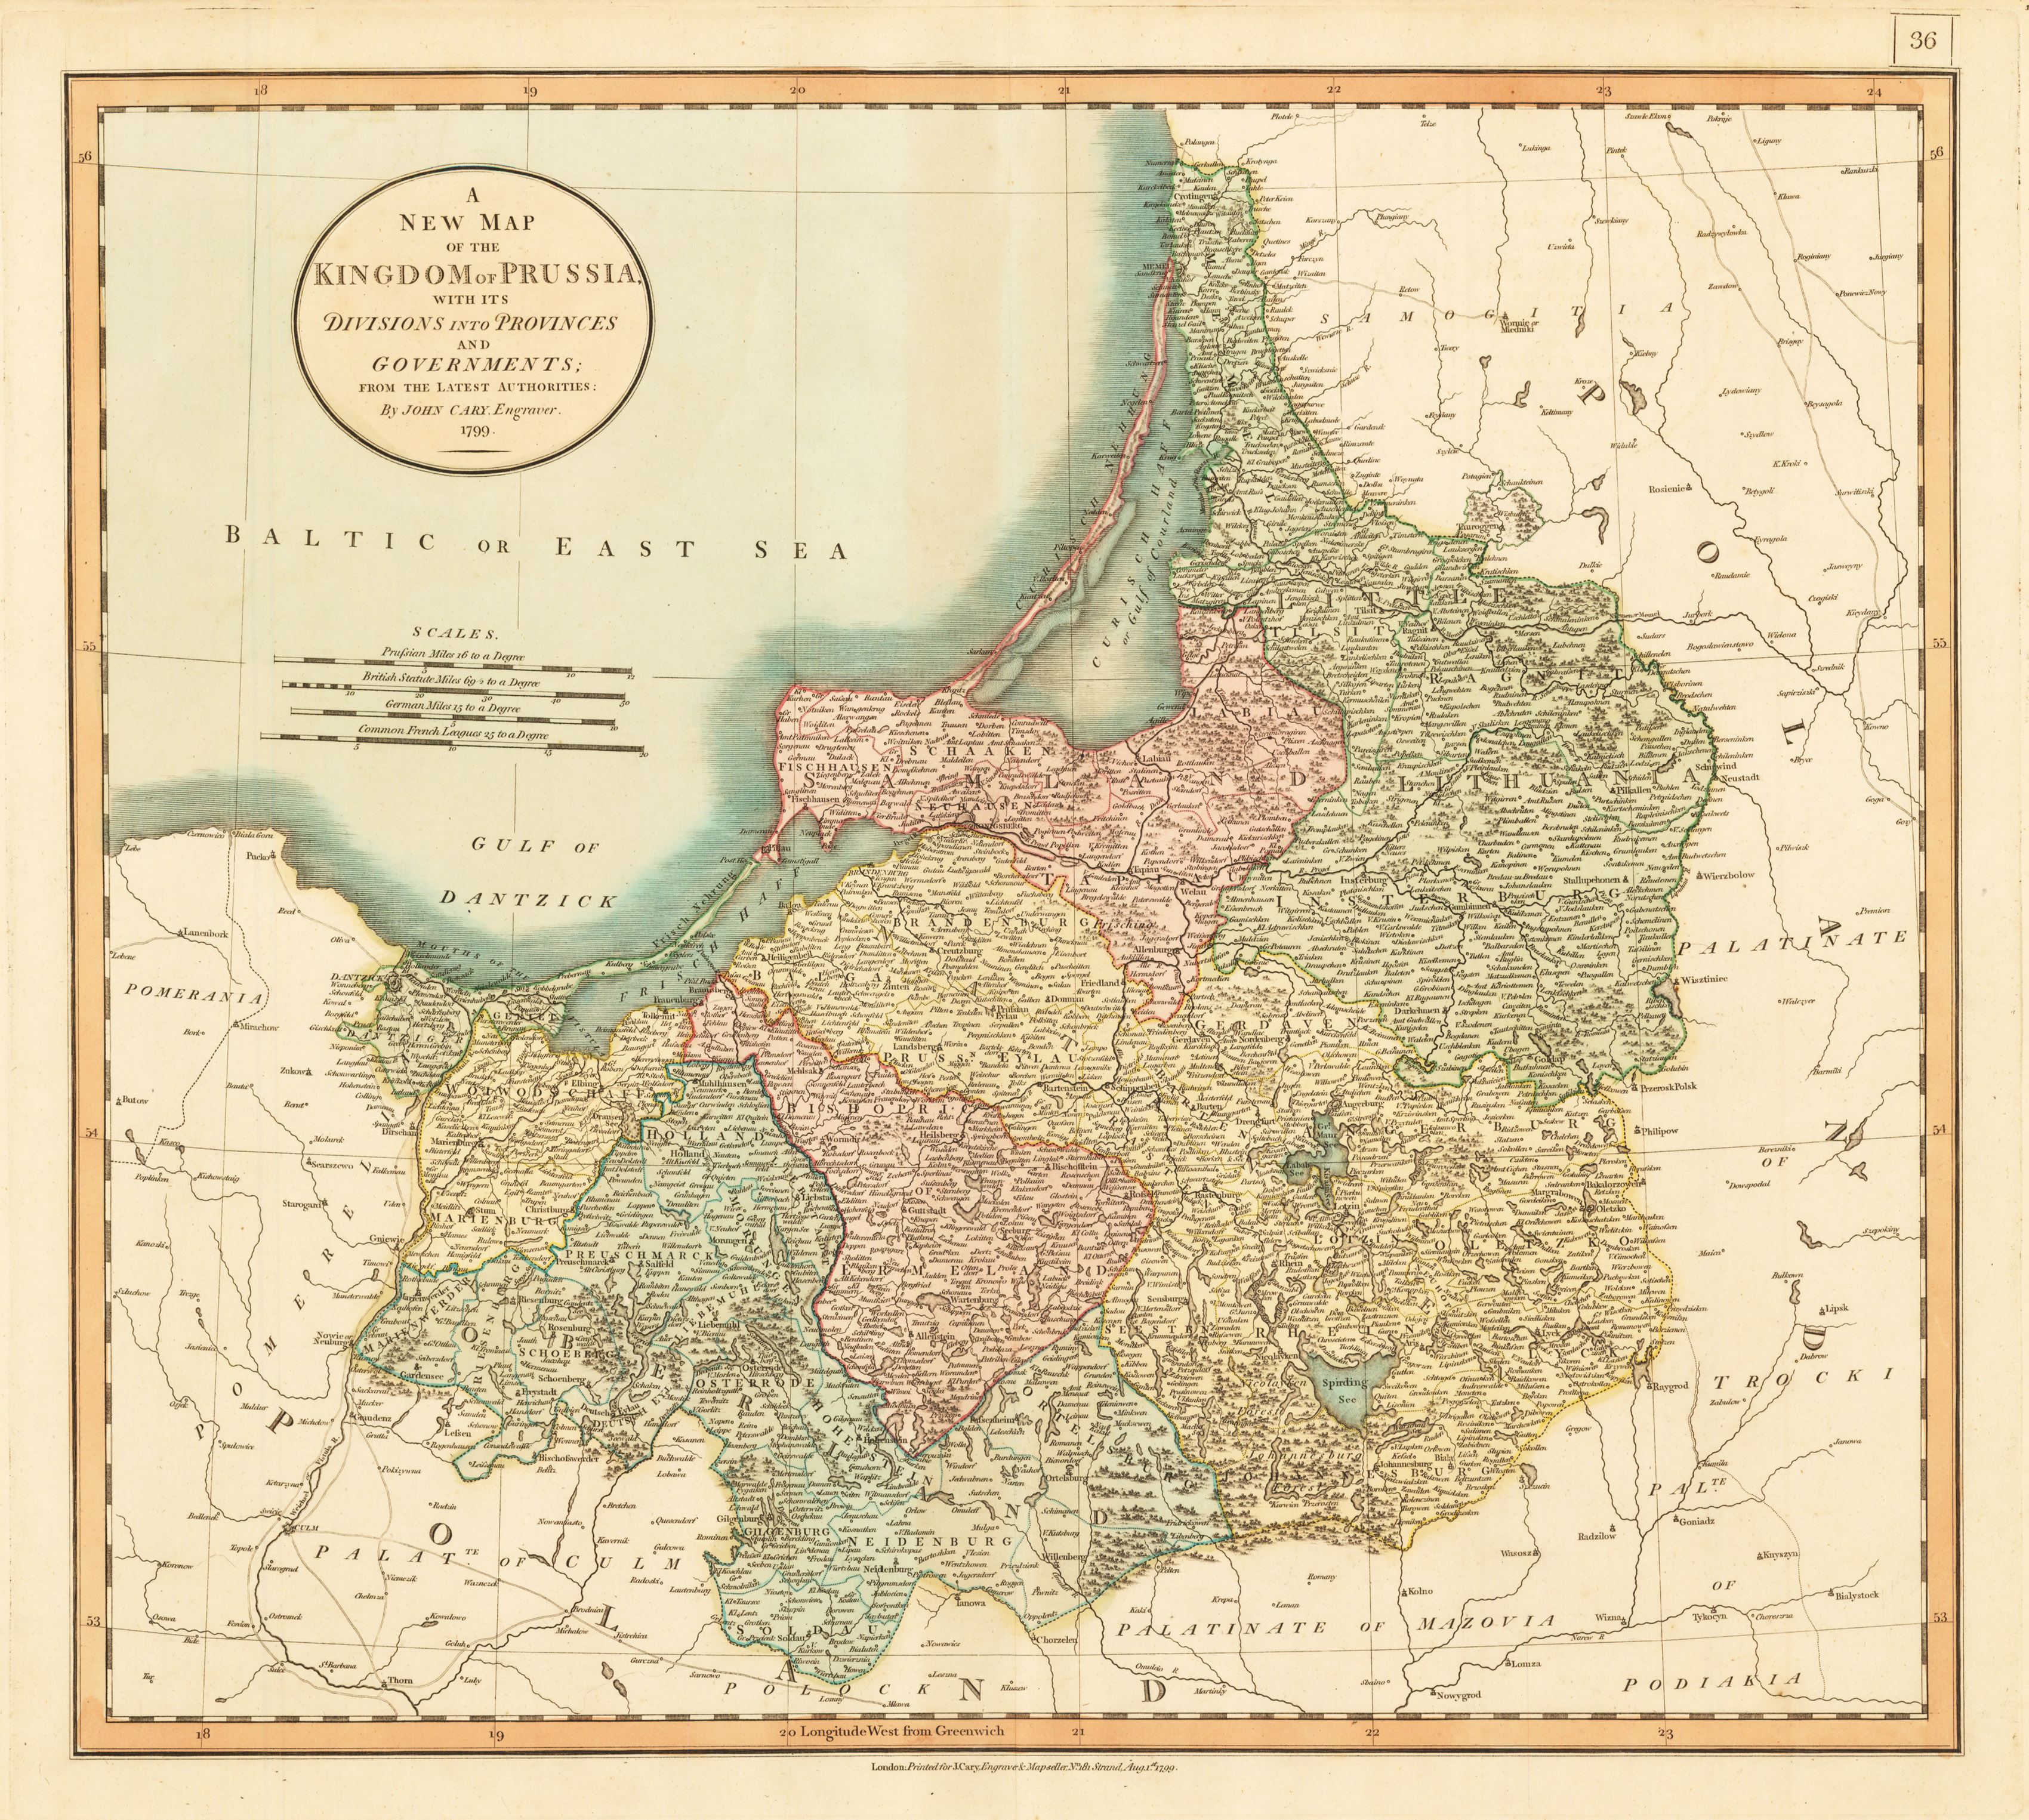 A New Map Of The Kingdom Of Prussia With Its Divisions Into